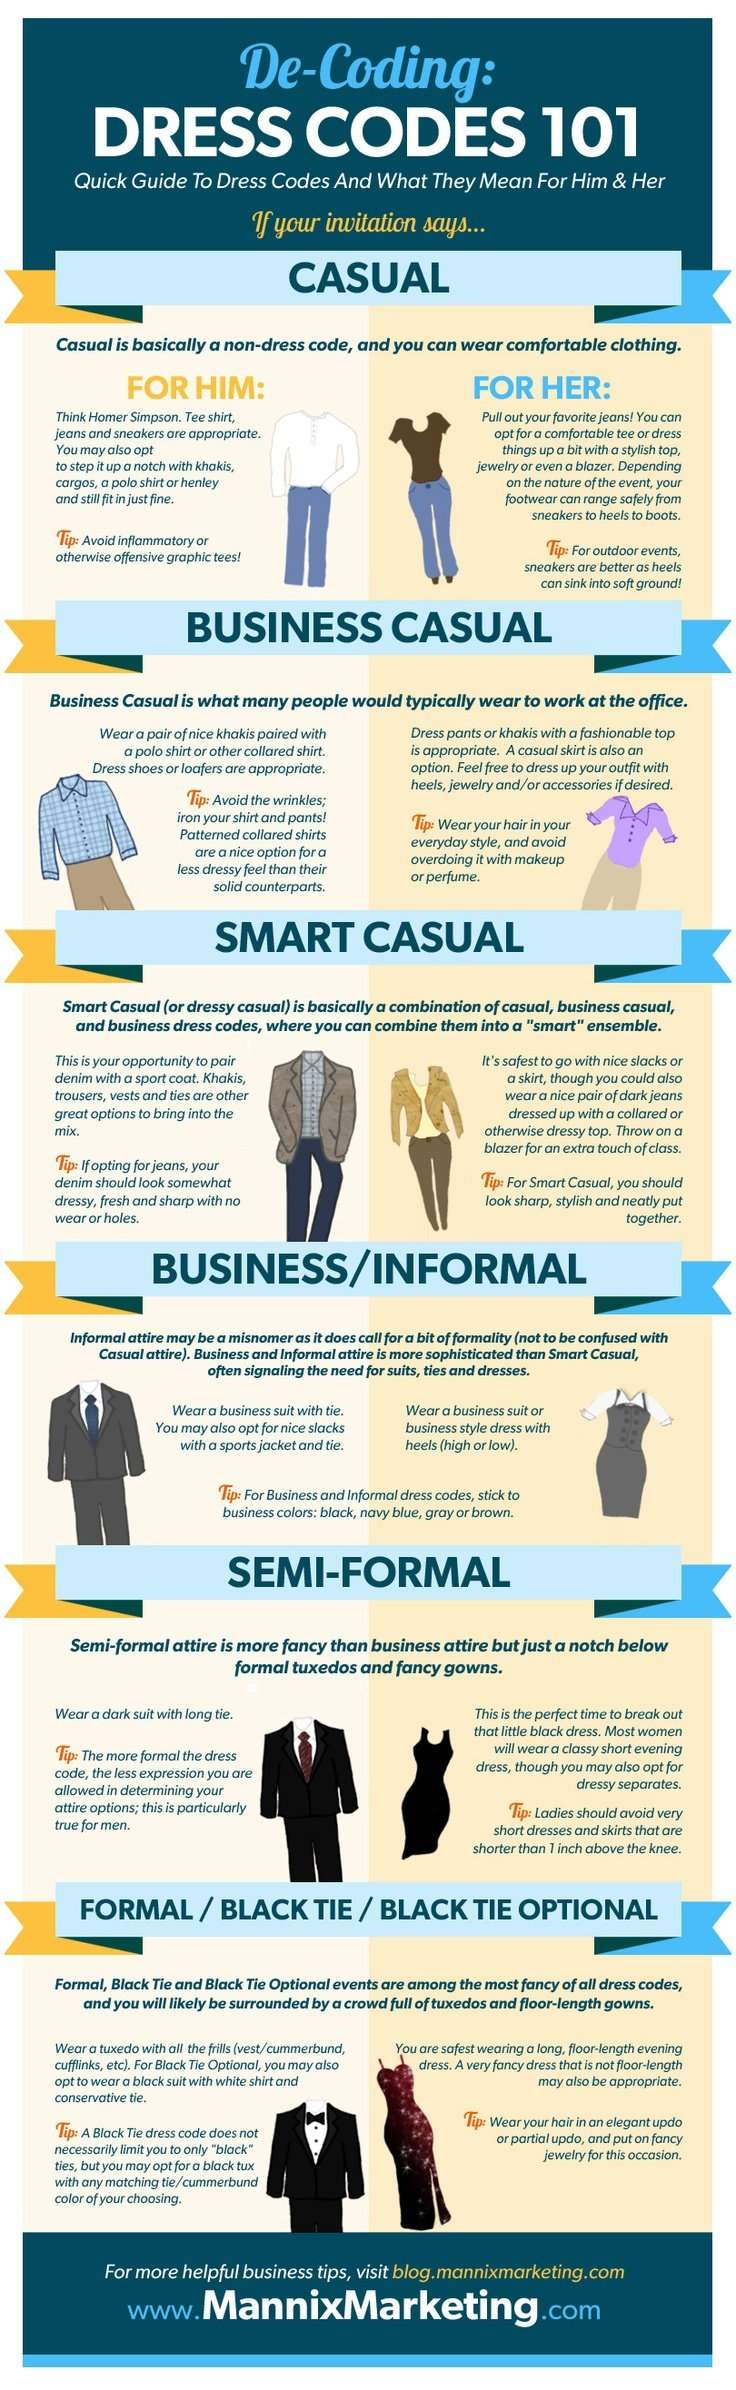 De-coding Dress Codes 101